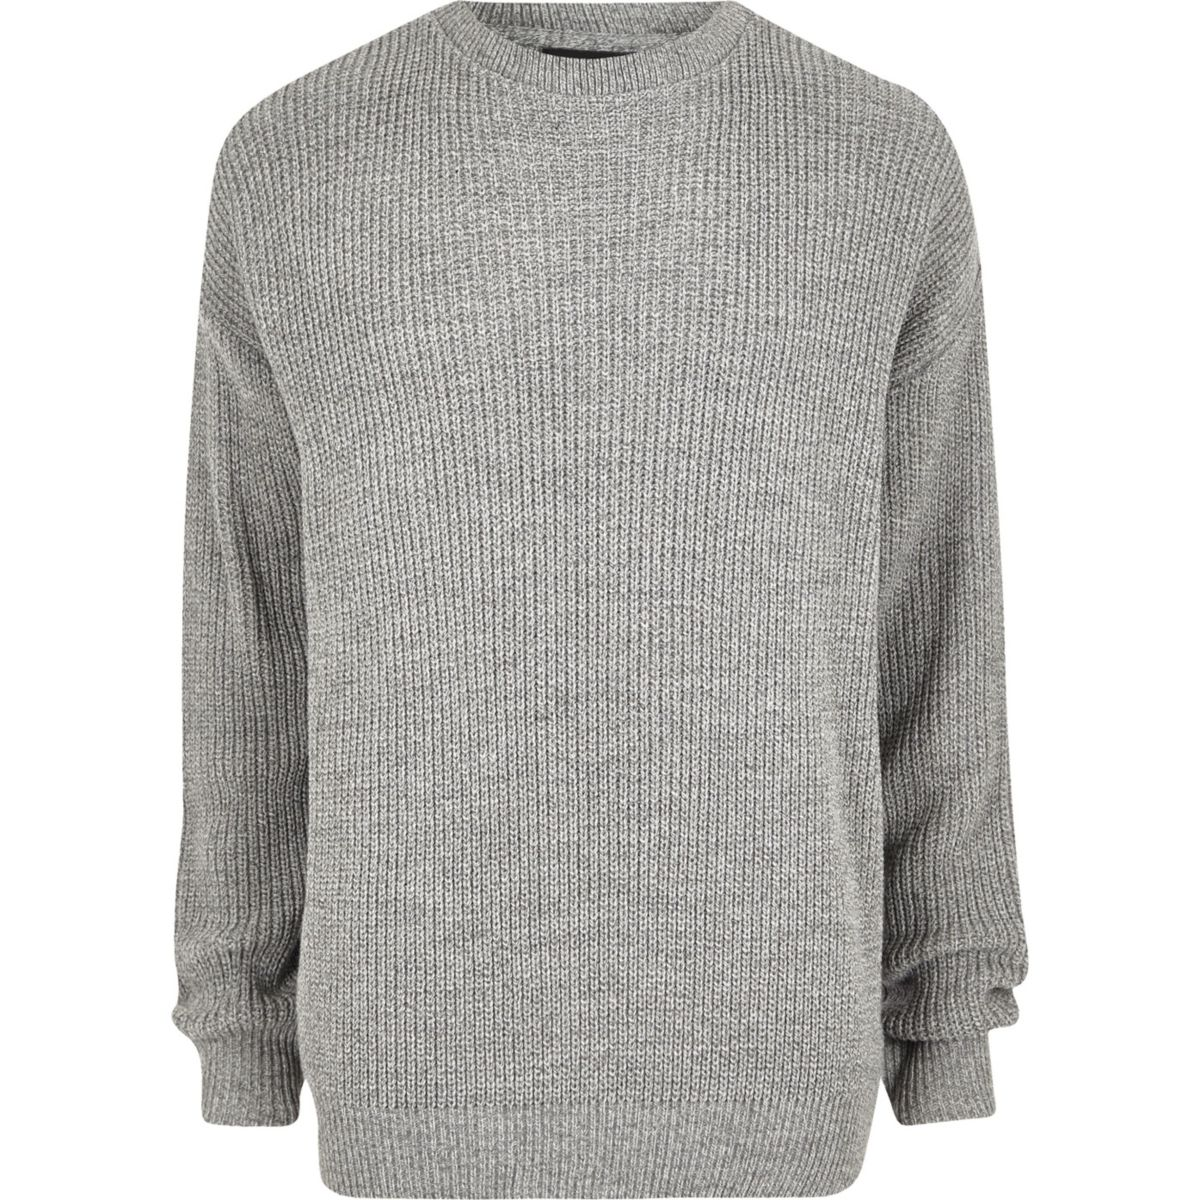 Big and Tall grey oversized fisherman sweater